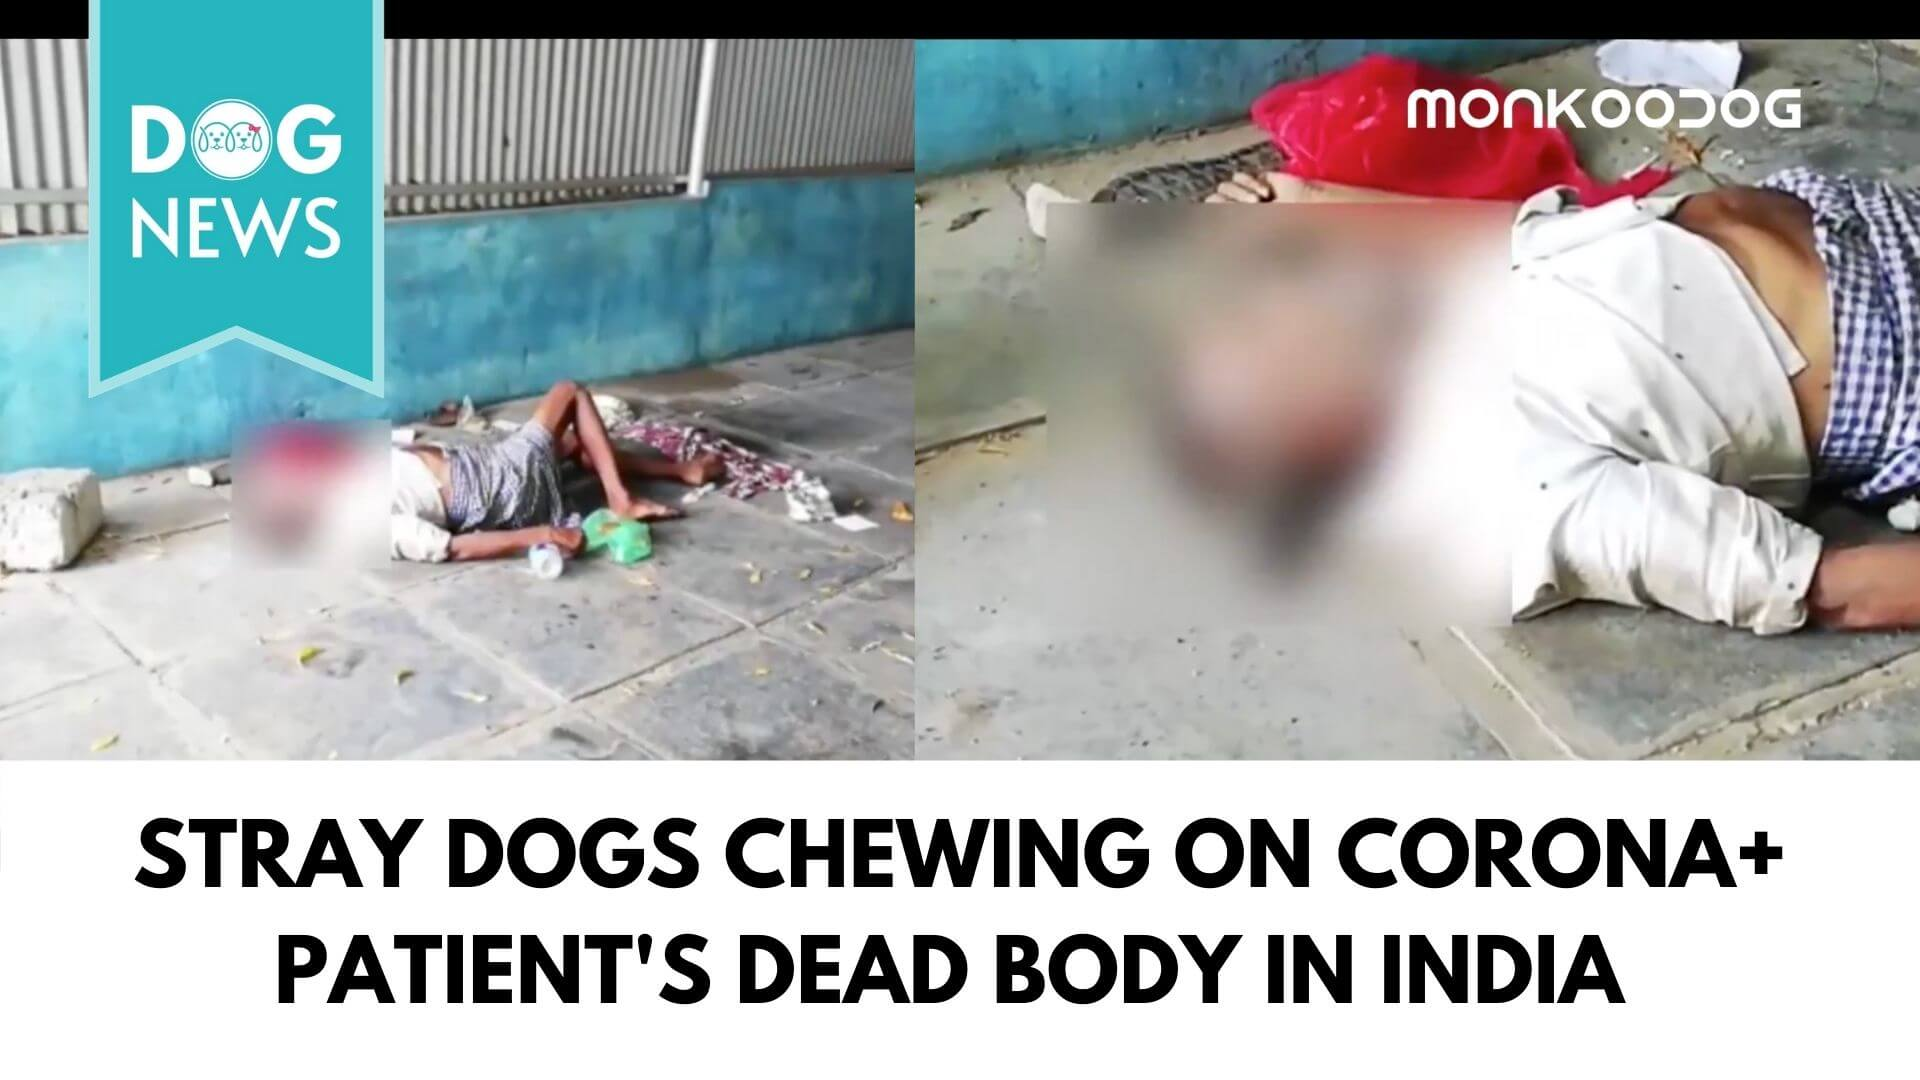 Shocking Viral Video of Dogs Chewing on a Dead Corona Infected Body within the hospital premise Shakes the Nation.